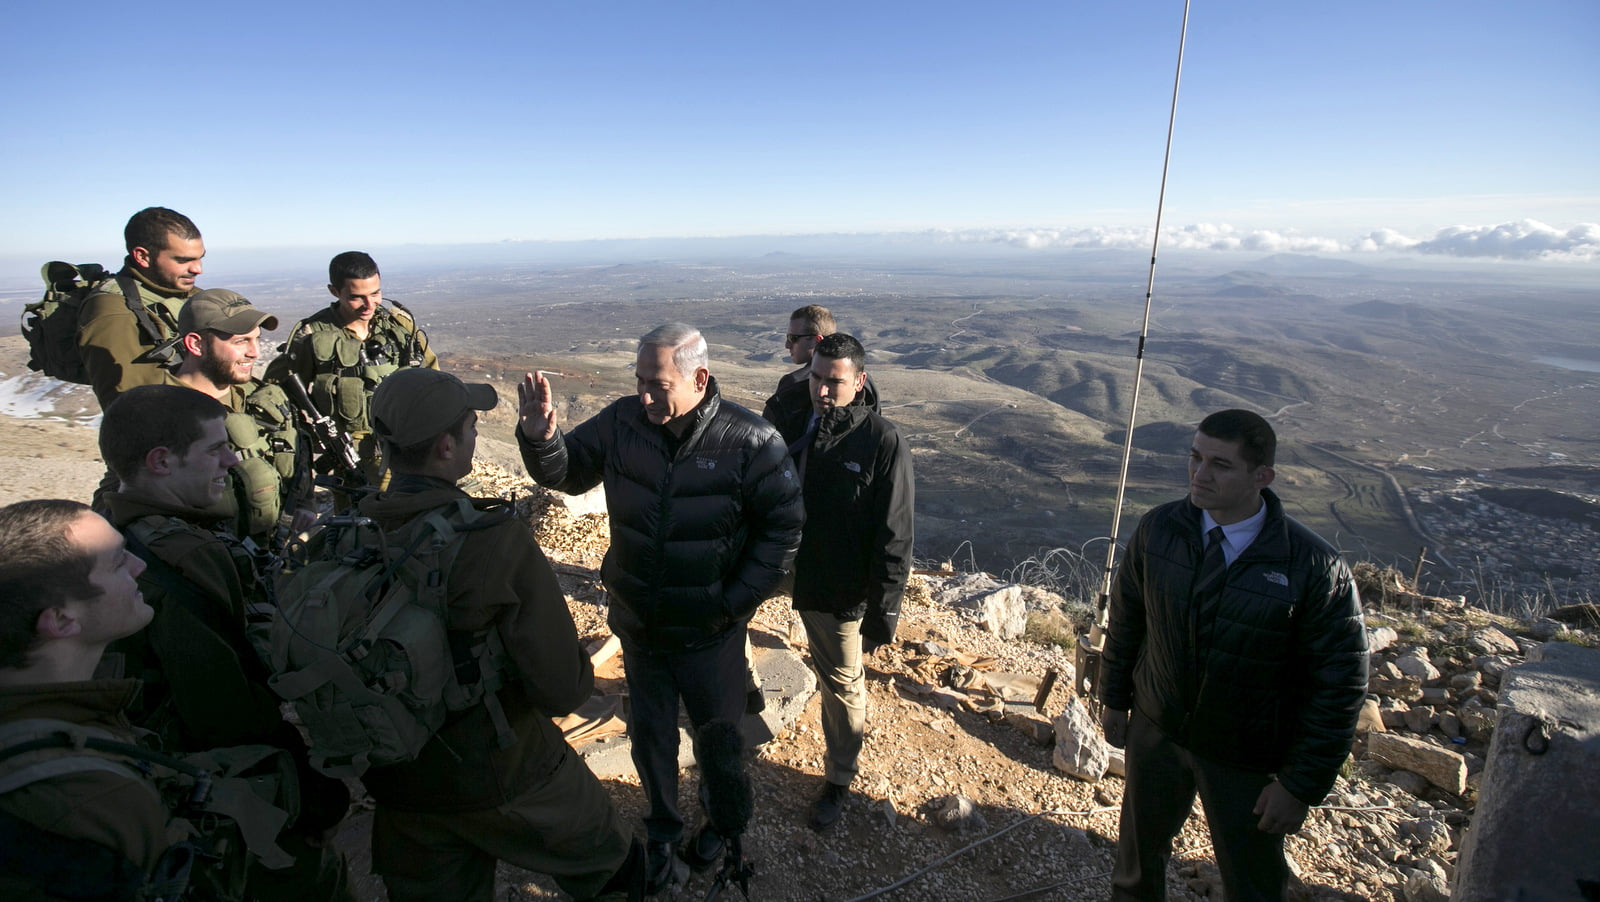 Israel's Prime Minister Benjamin Netanyahu, center, talks with Israeli soldiers at a military outpost during a visit at Mount Hermon in the Israeli-occupied Golan Heights overlooking the Israel-Syria border on, Feb. 4, 2015. Baz Ratner | AP